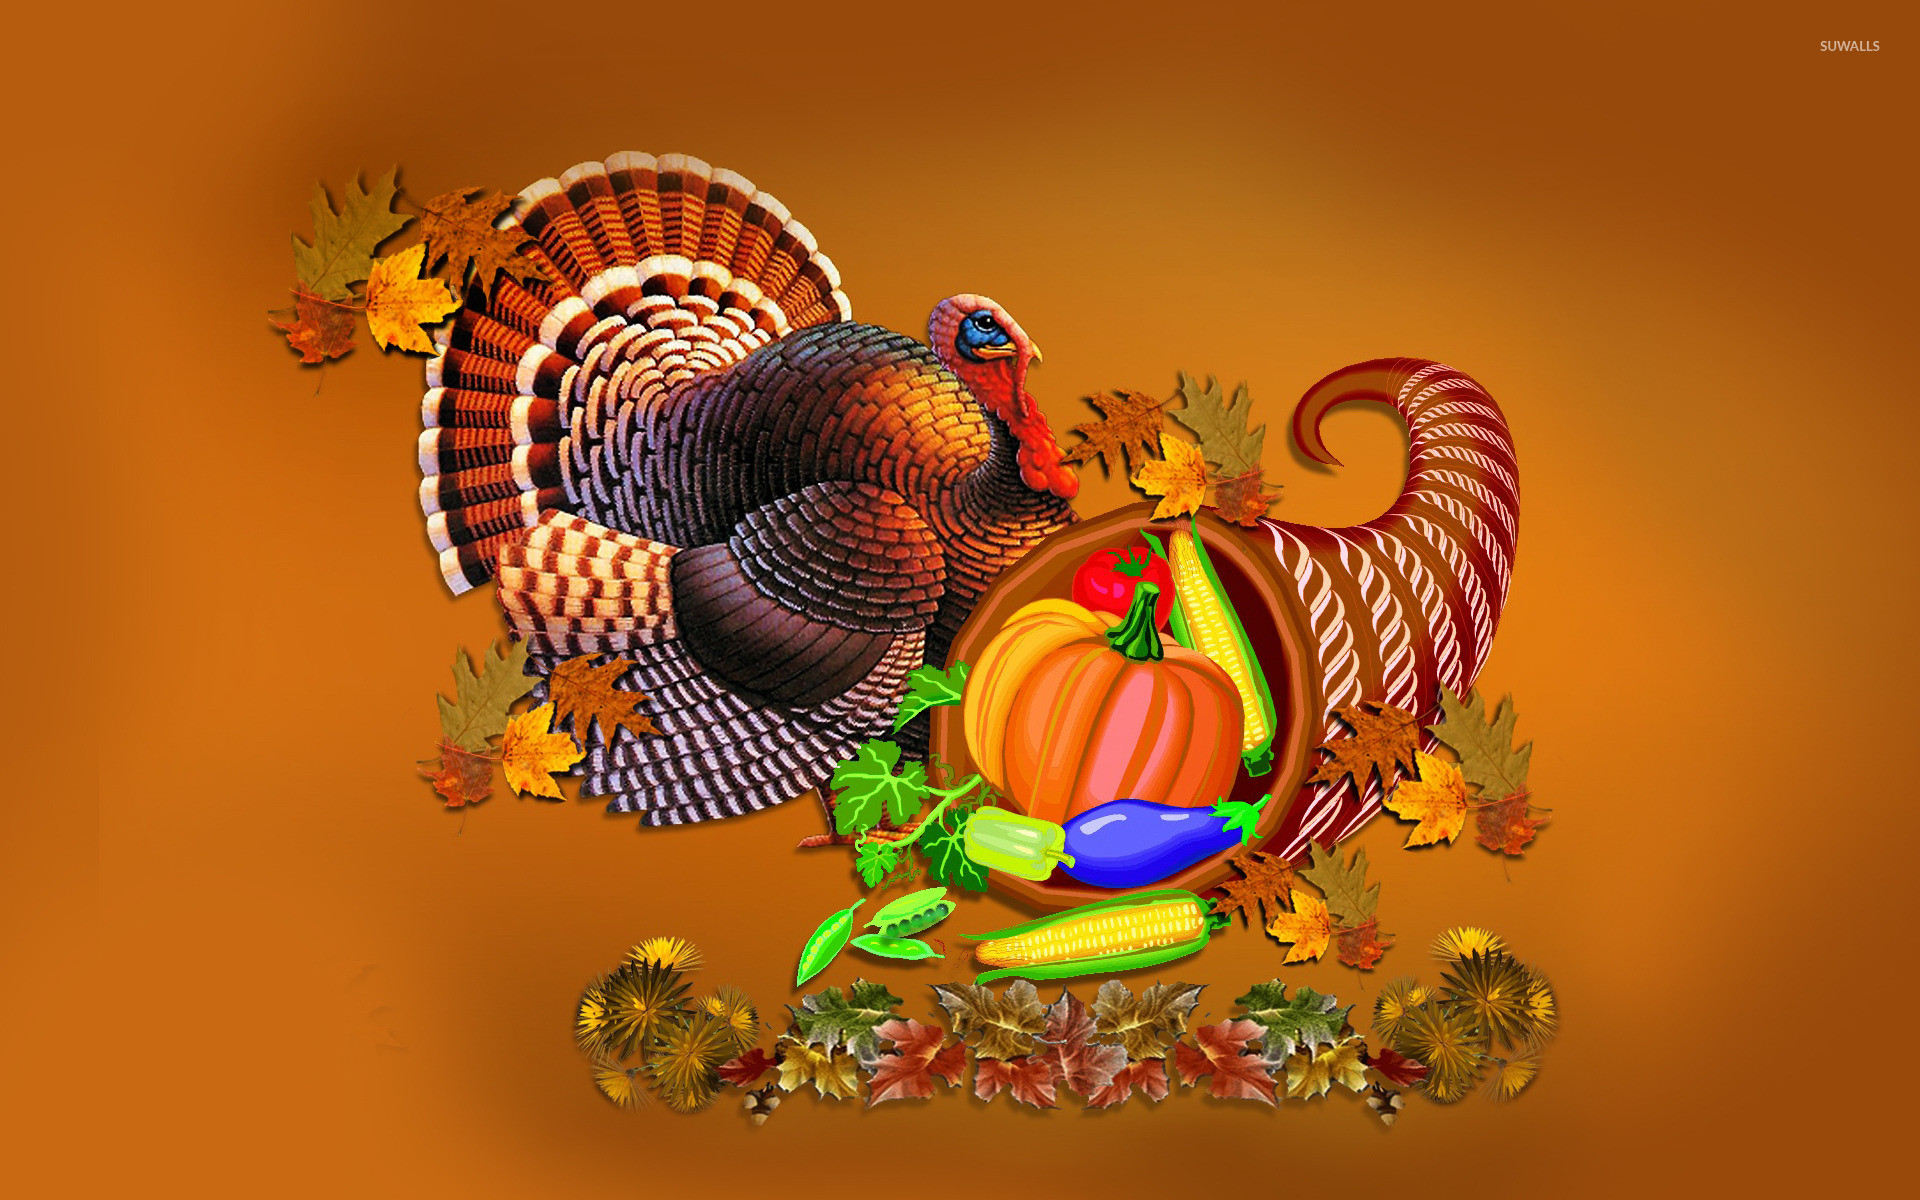 1920x1200 Top 15+ Images for Paper Thanksgiving Wallpaper | Image No: 18. File Type